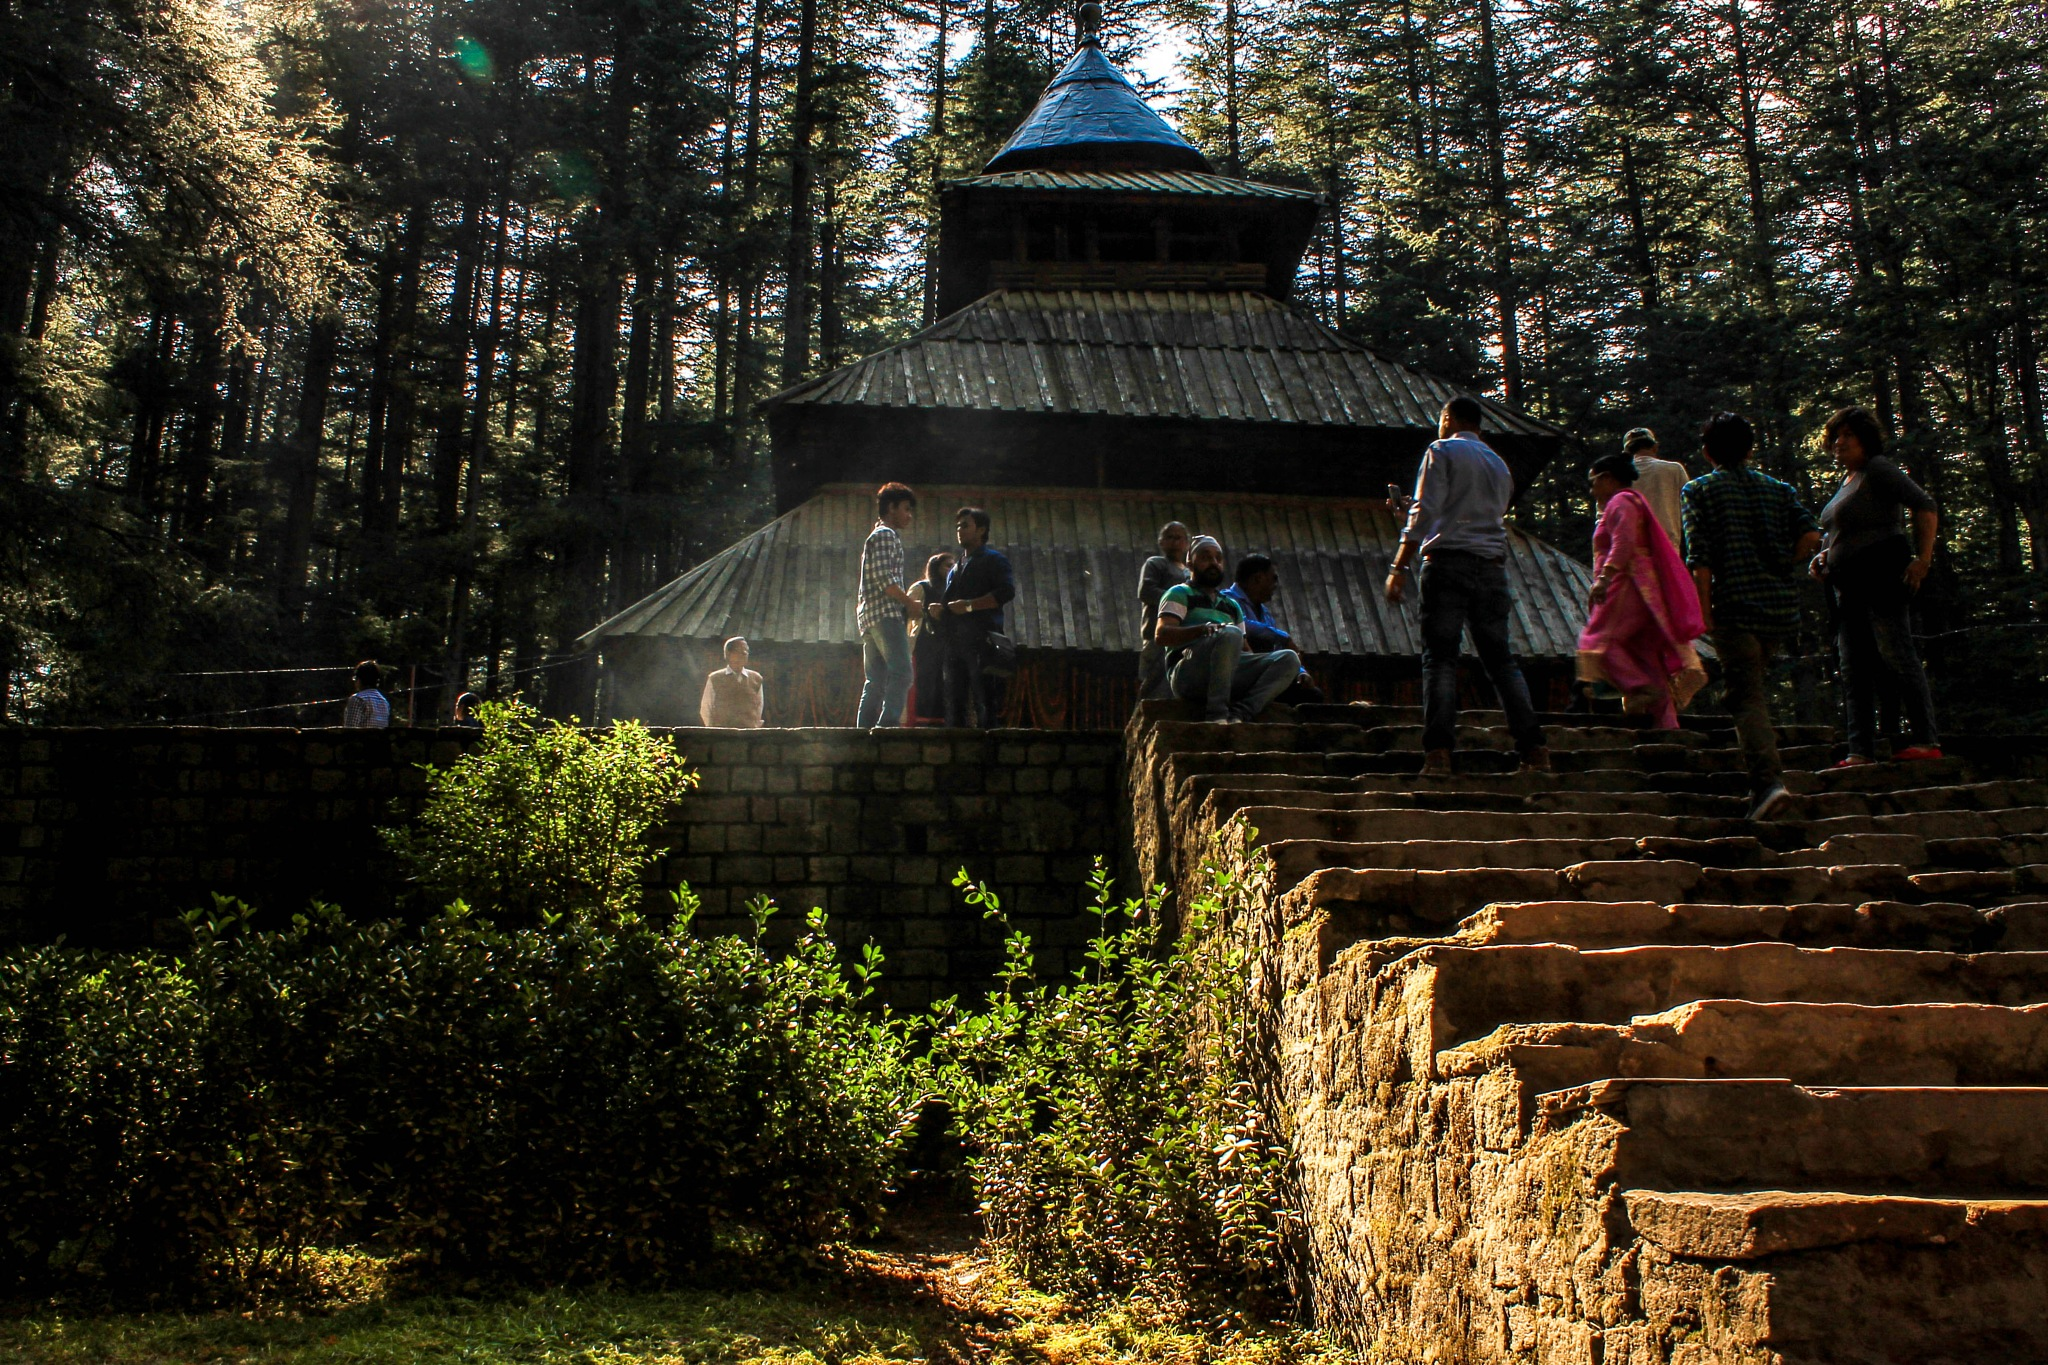 HIDIMBA temple in Manali by subhagatadey